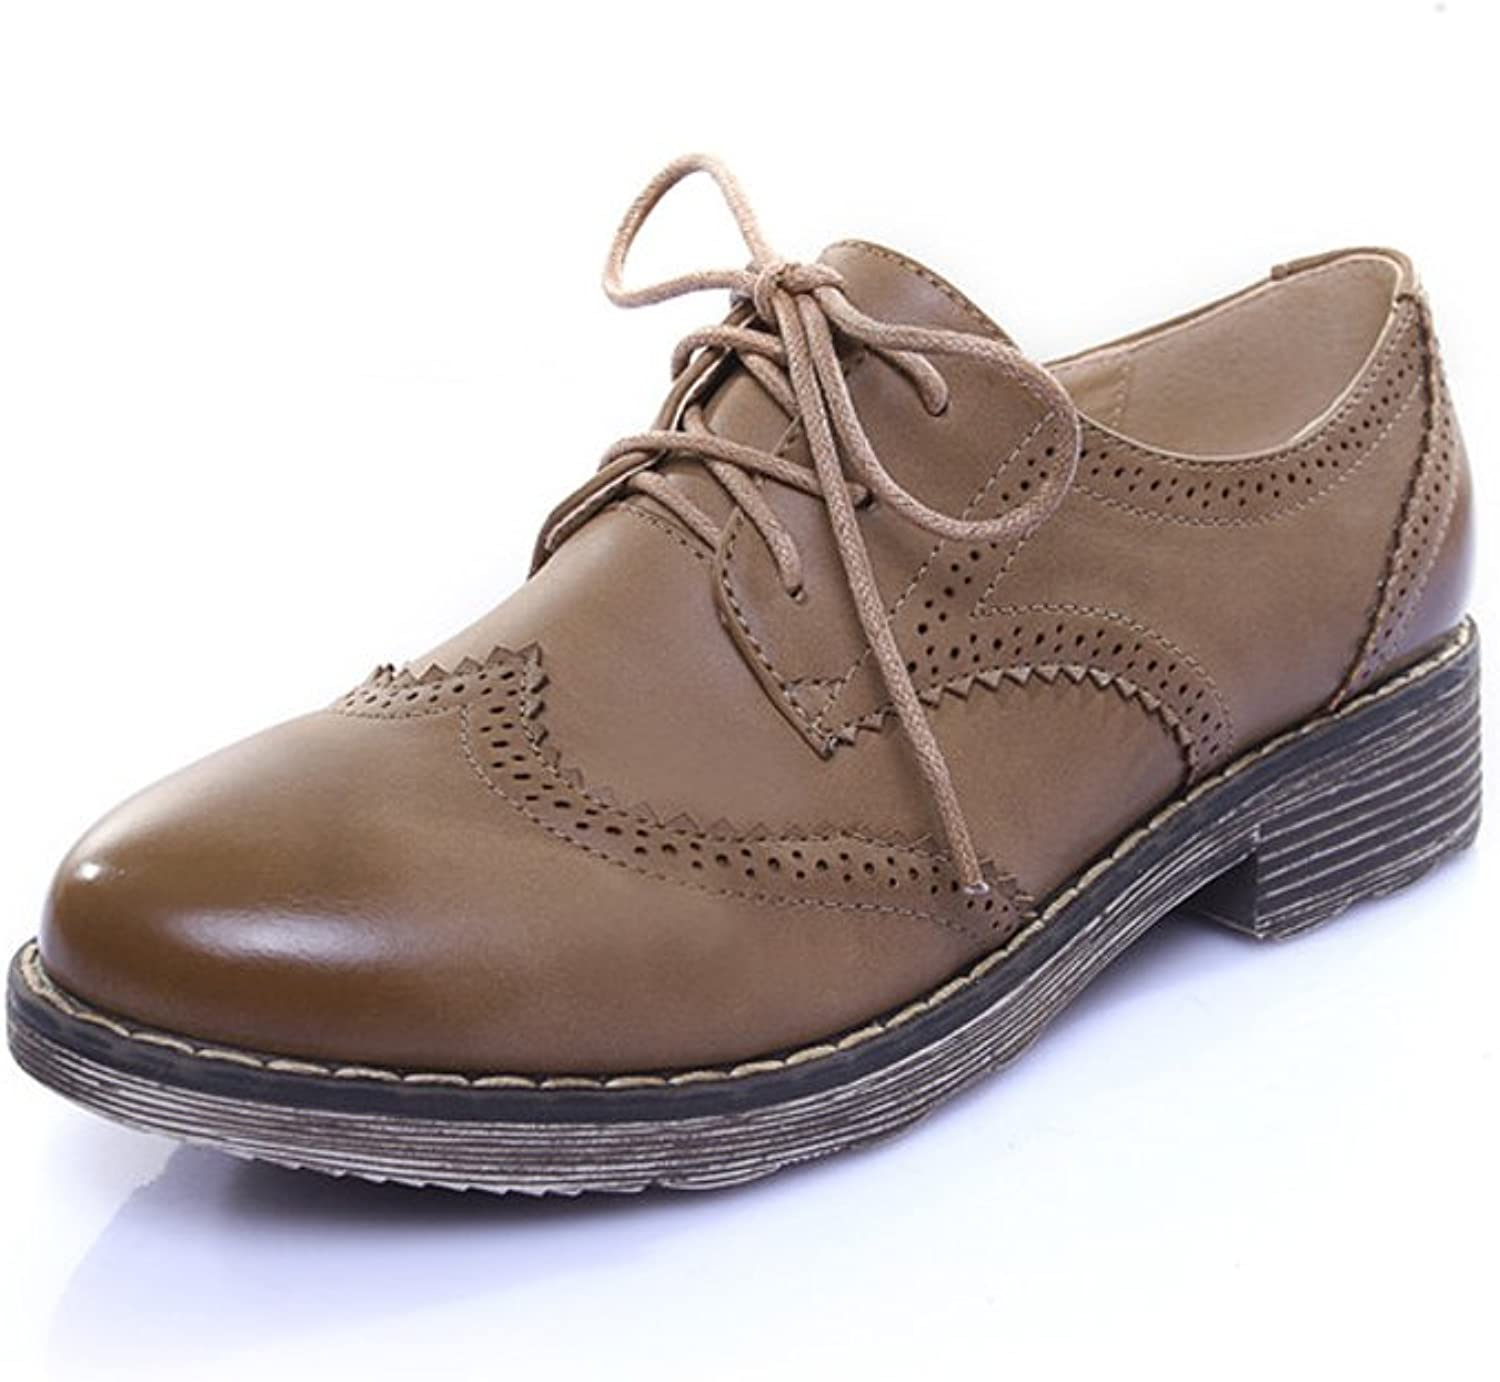 Lucksender Womens Fashion Lace Up Bullock Carve Oxford shoes